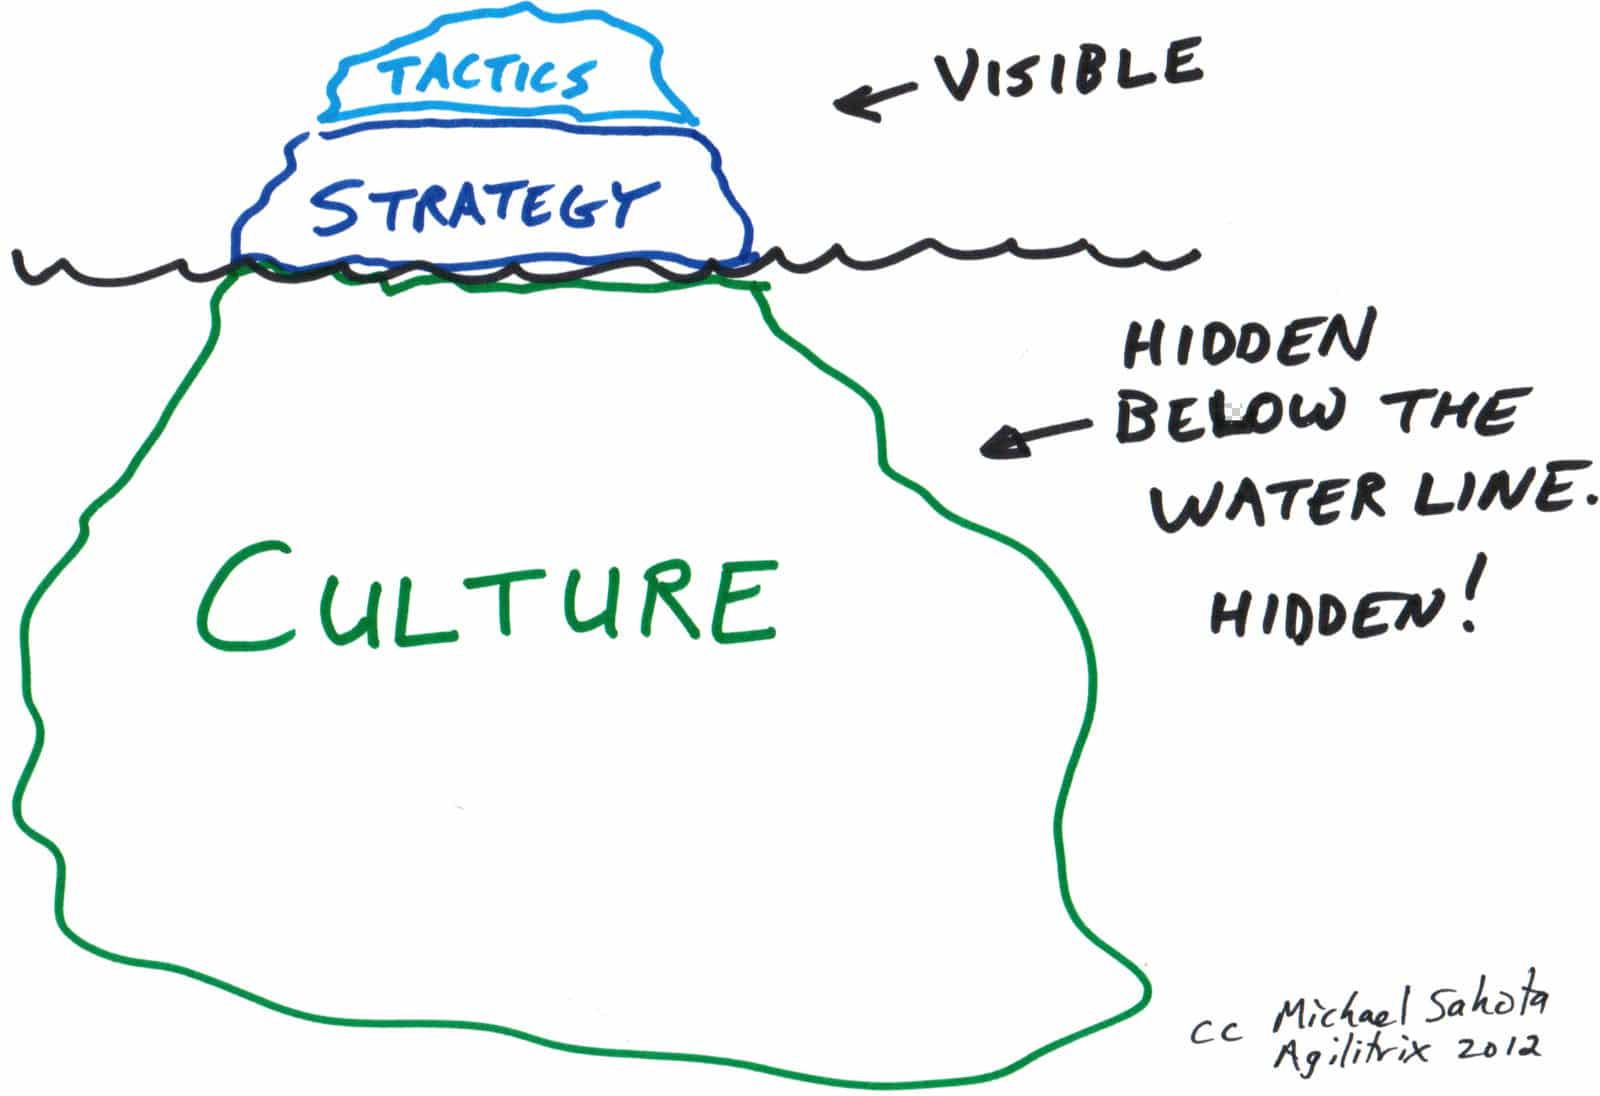 Tactics Strategy Amp Culture A Model For Thinking About